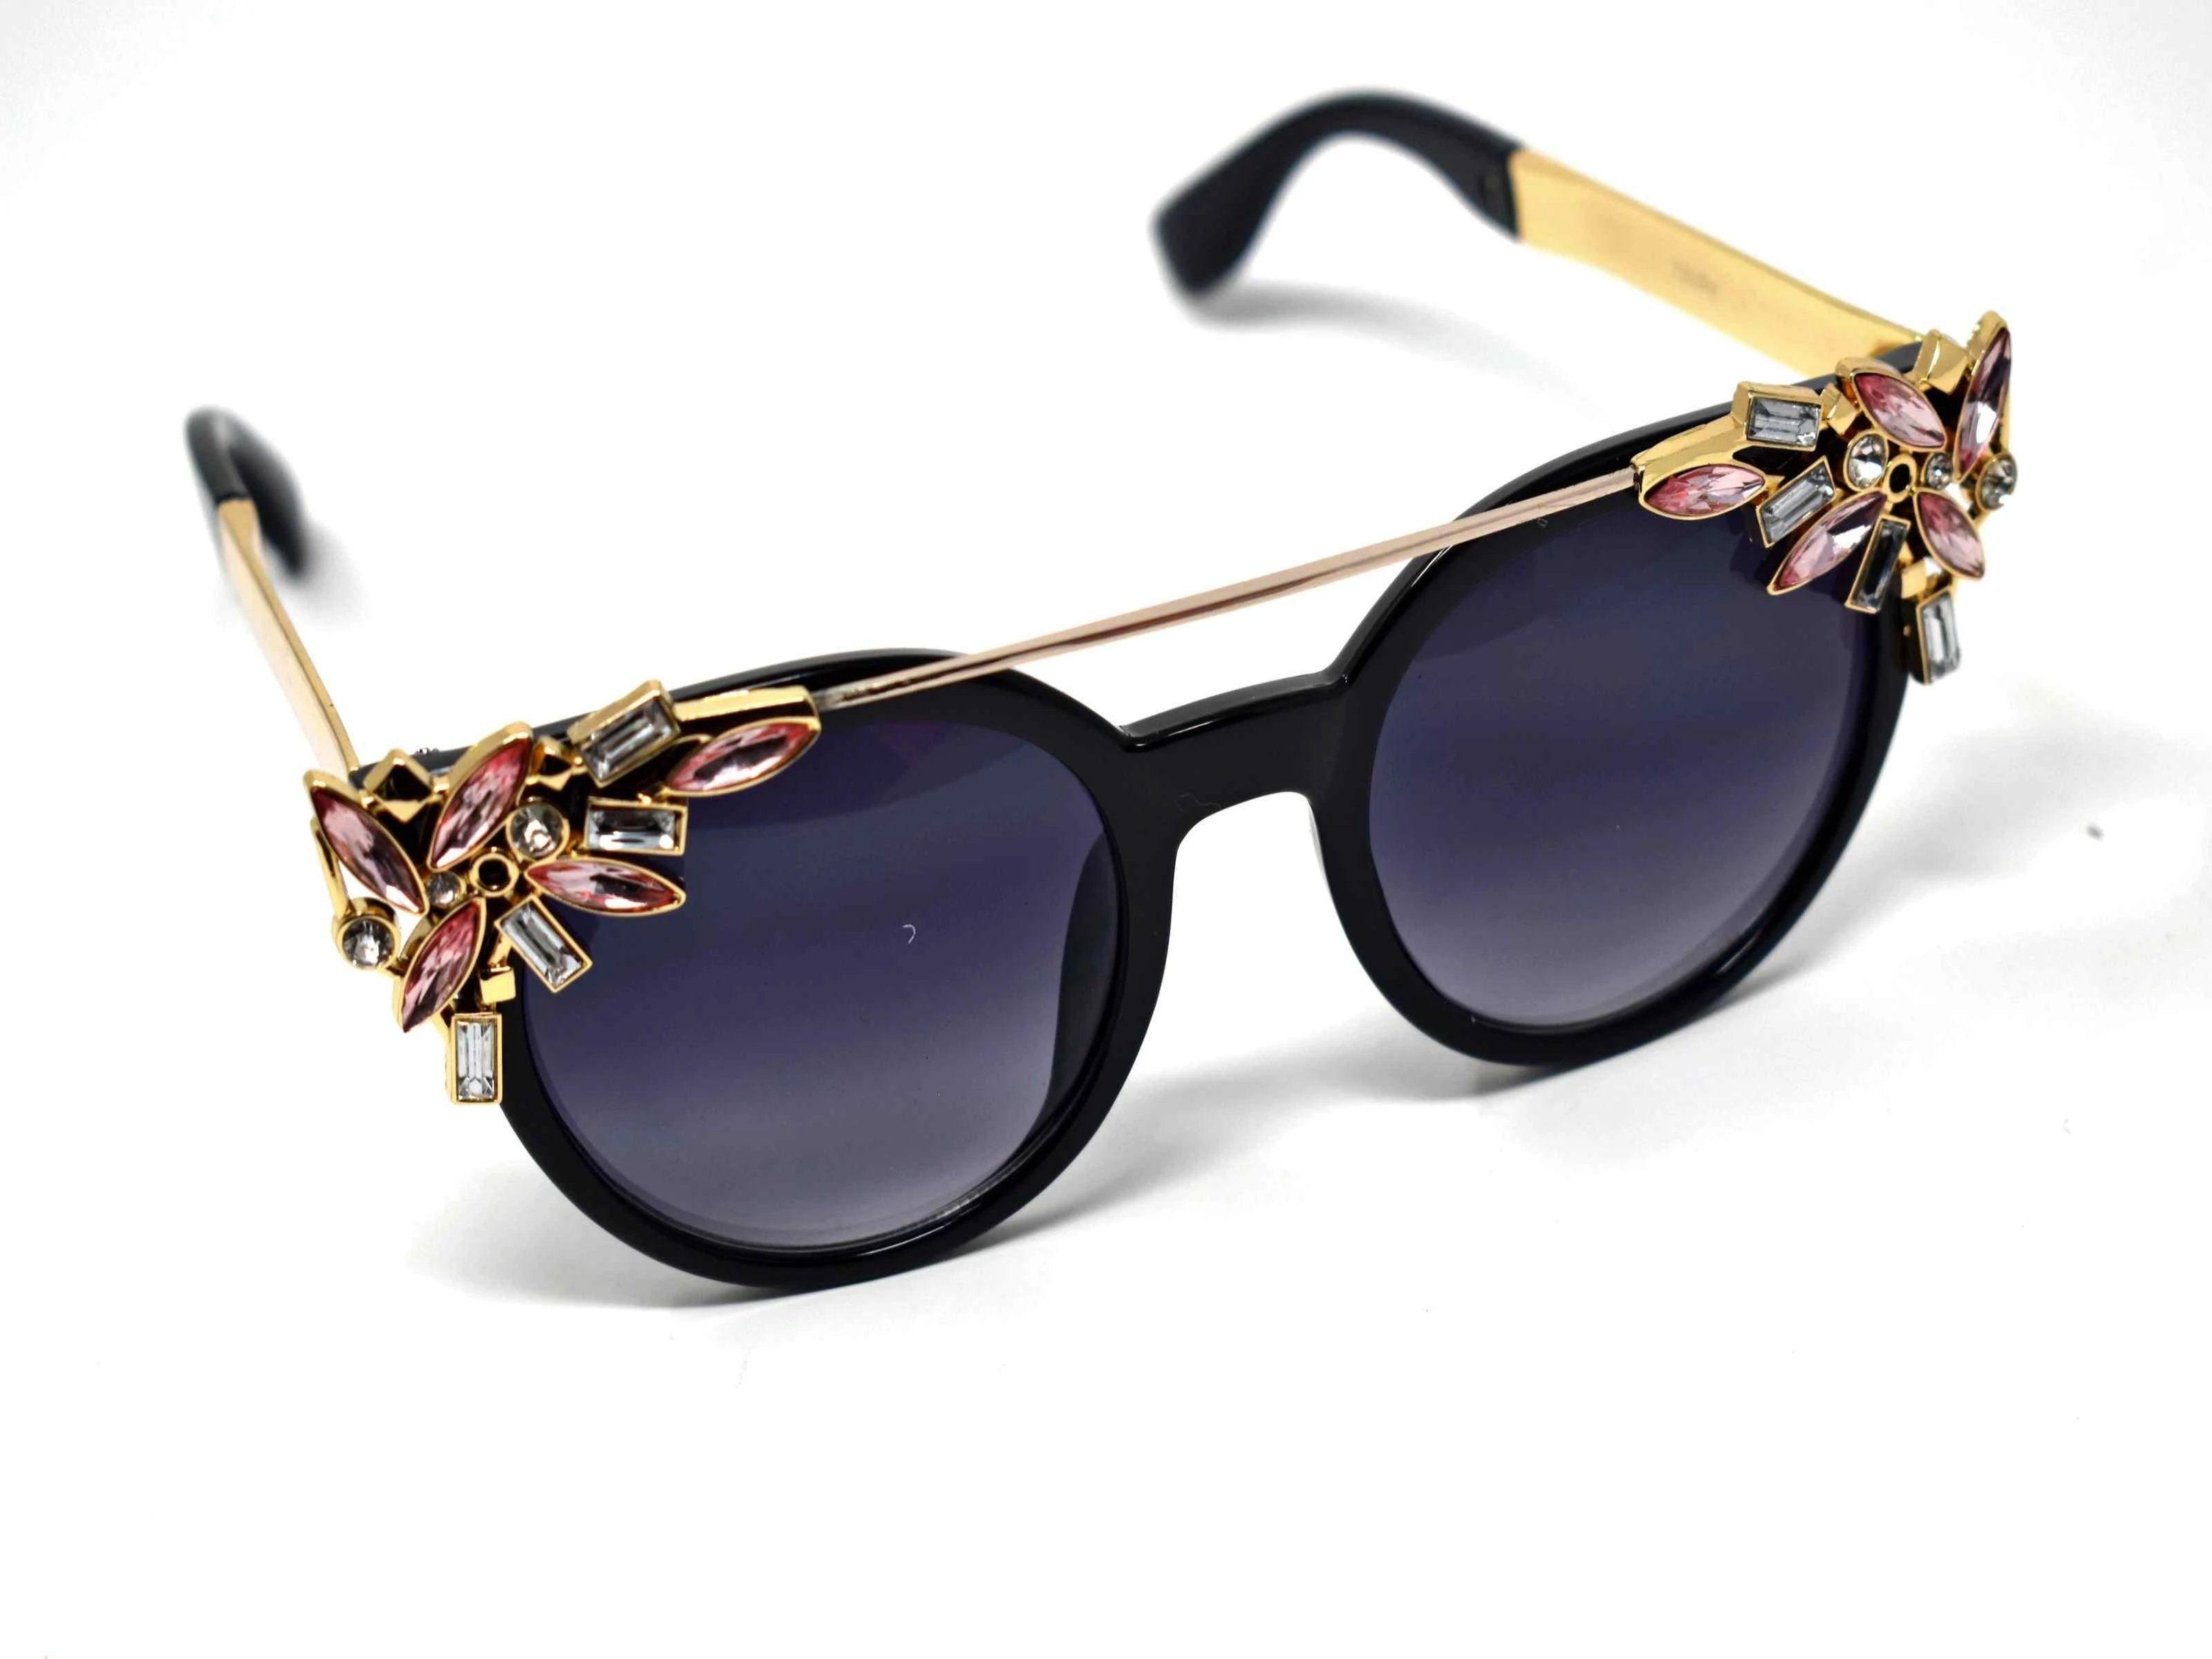 Trend setter and attention getter is what they will call you in these Pansy black sunglasses with a sleek gold trim adorned in pink and clear gems, in a pantos style frame.